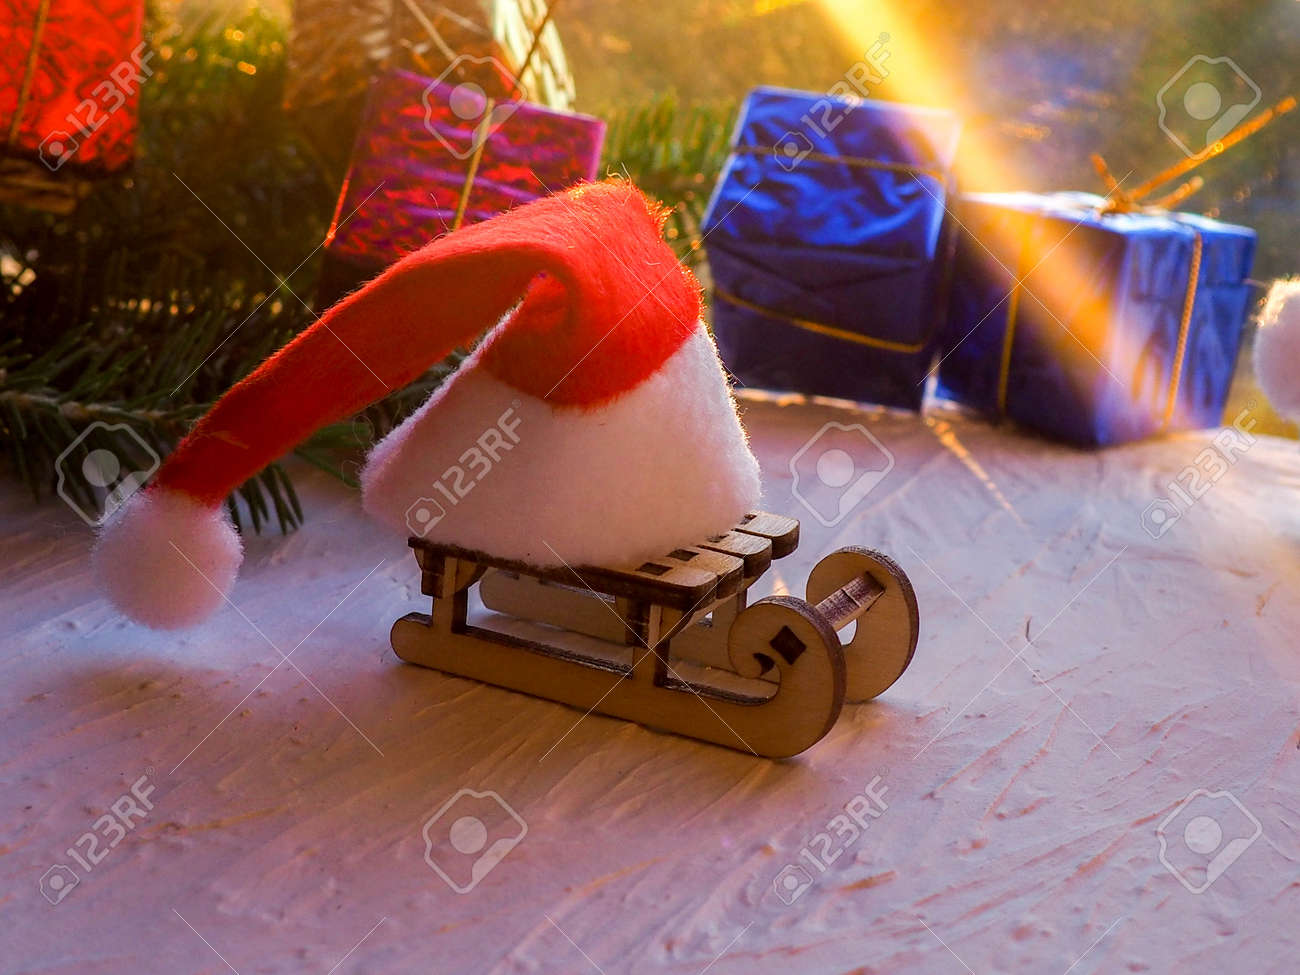 Christmas Still Life Of A Toy Sled Vintage Photo Gifts For